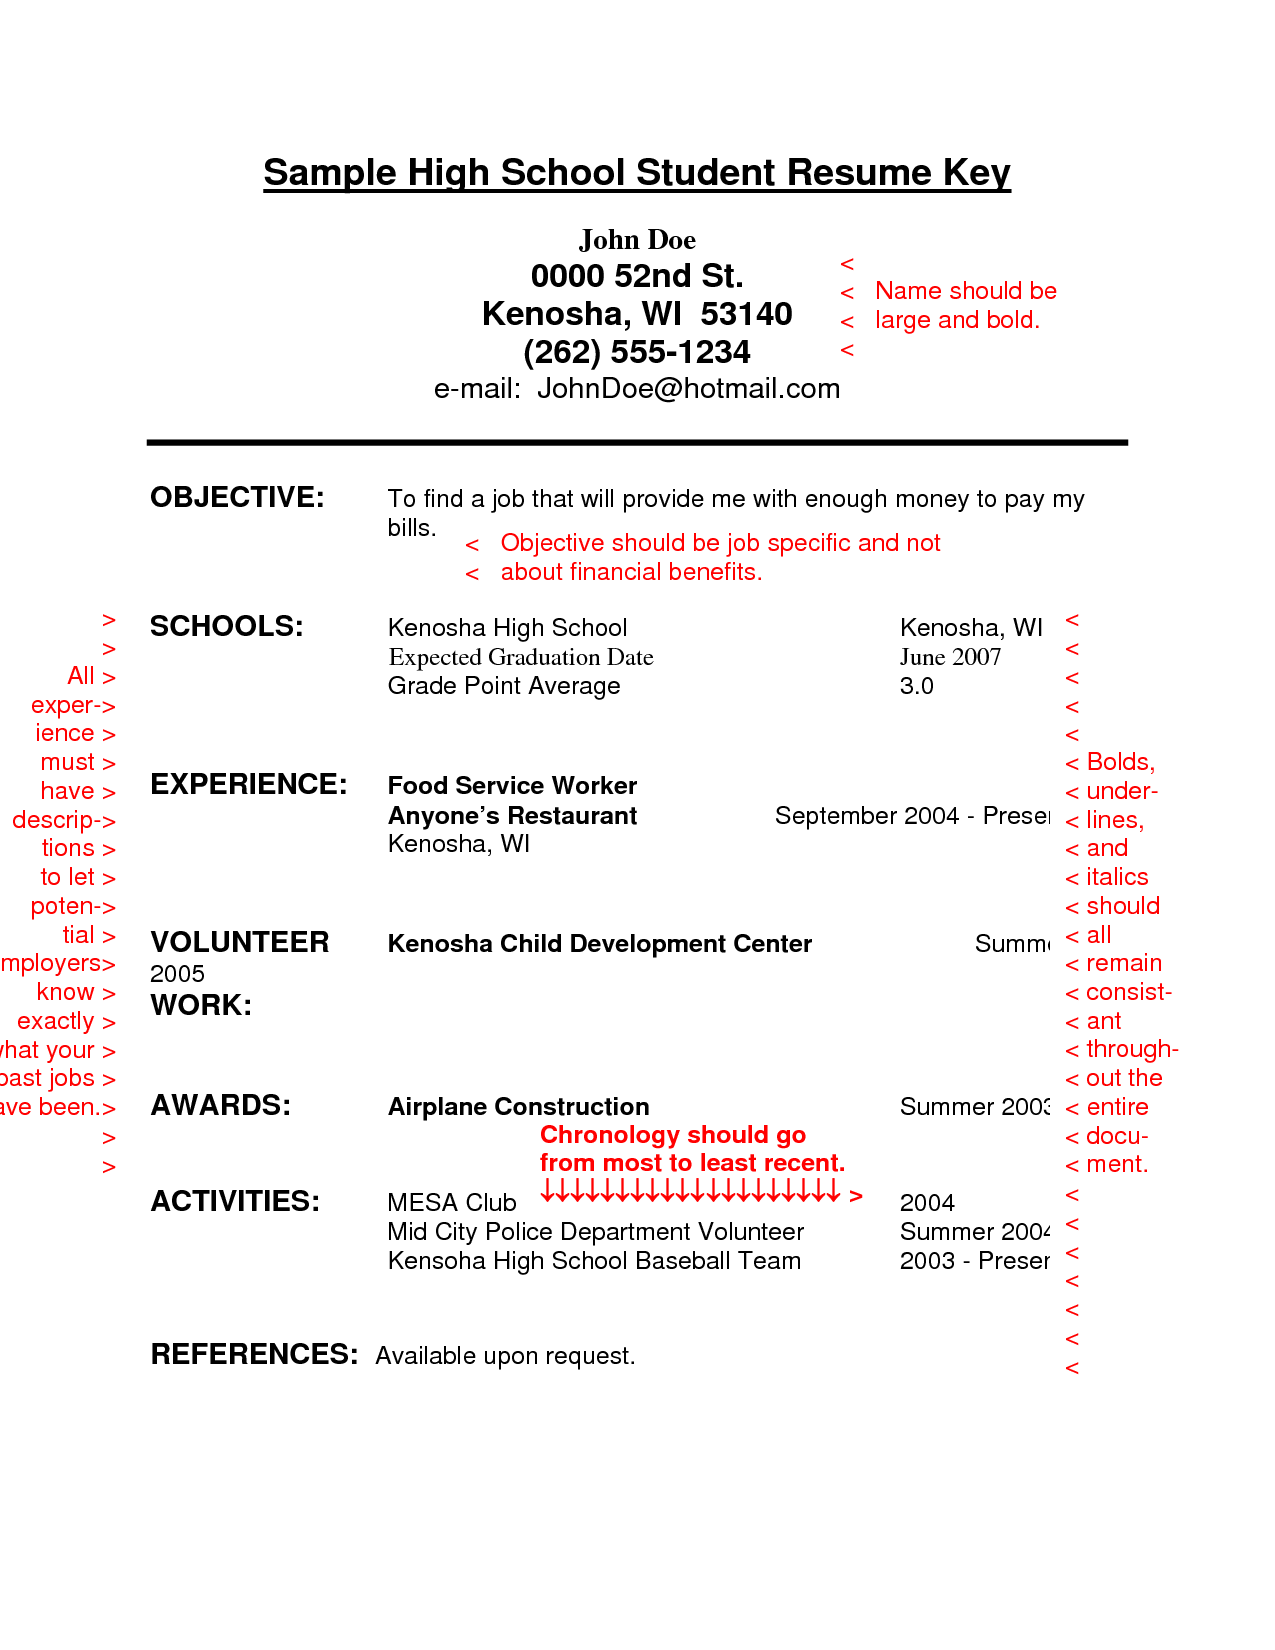 Resume Sample For High School Students With No Experience   Http://www.  Sample Resume For High School Student With No Experience